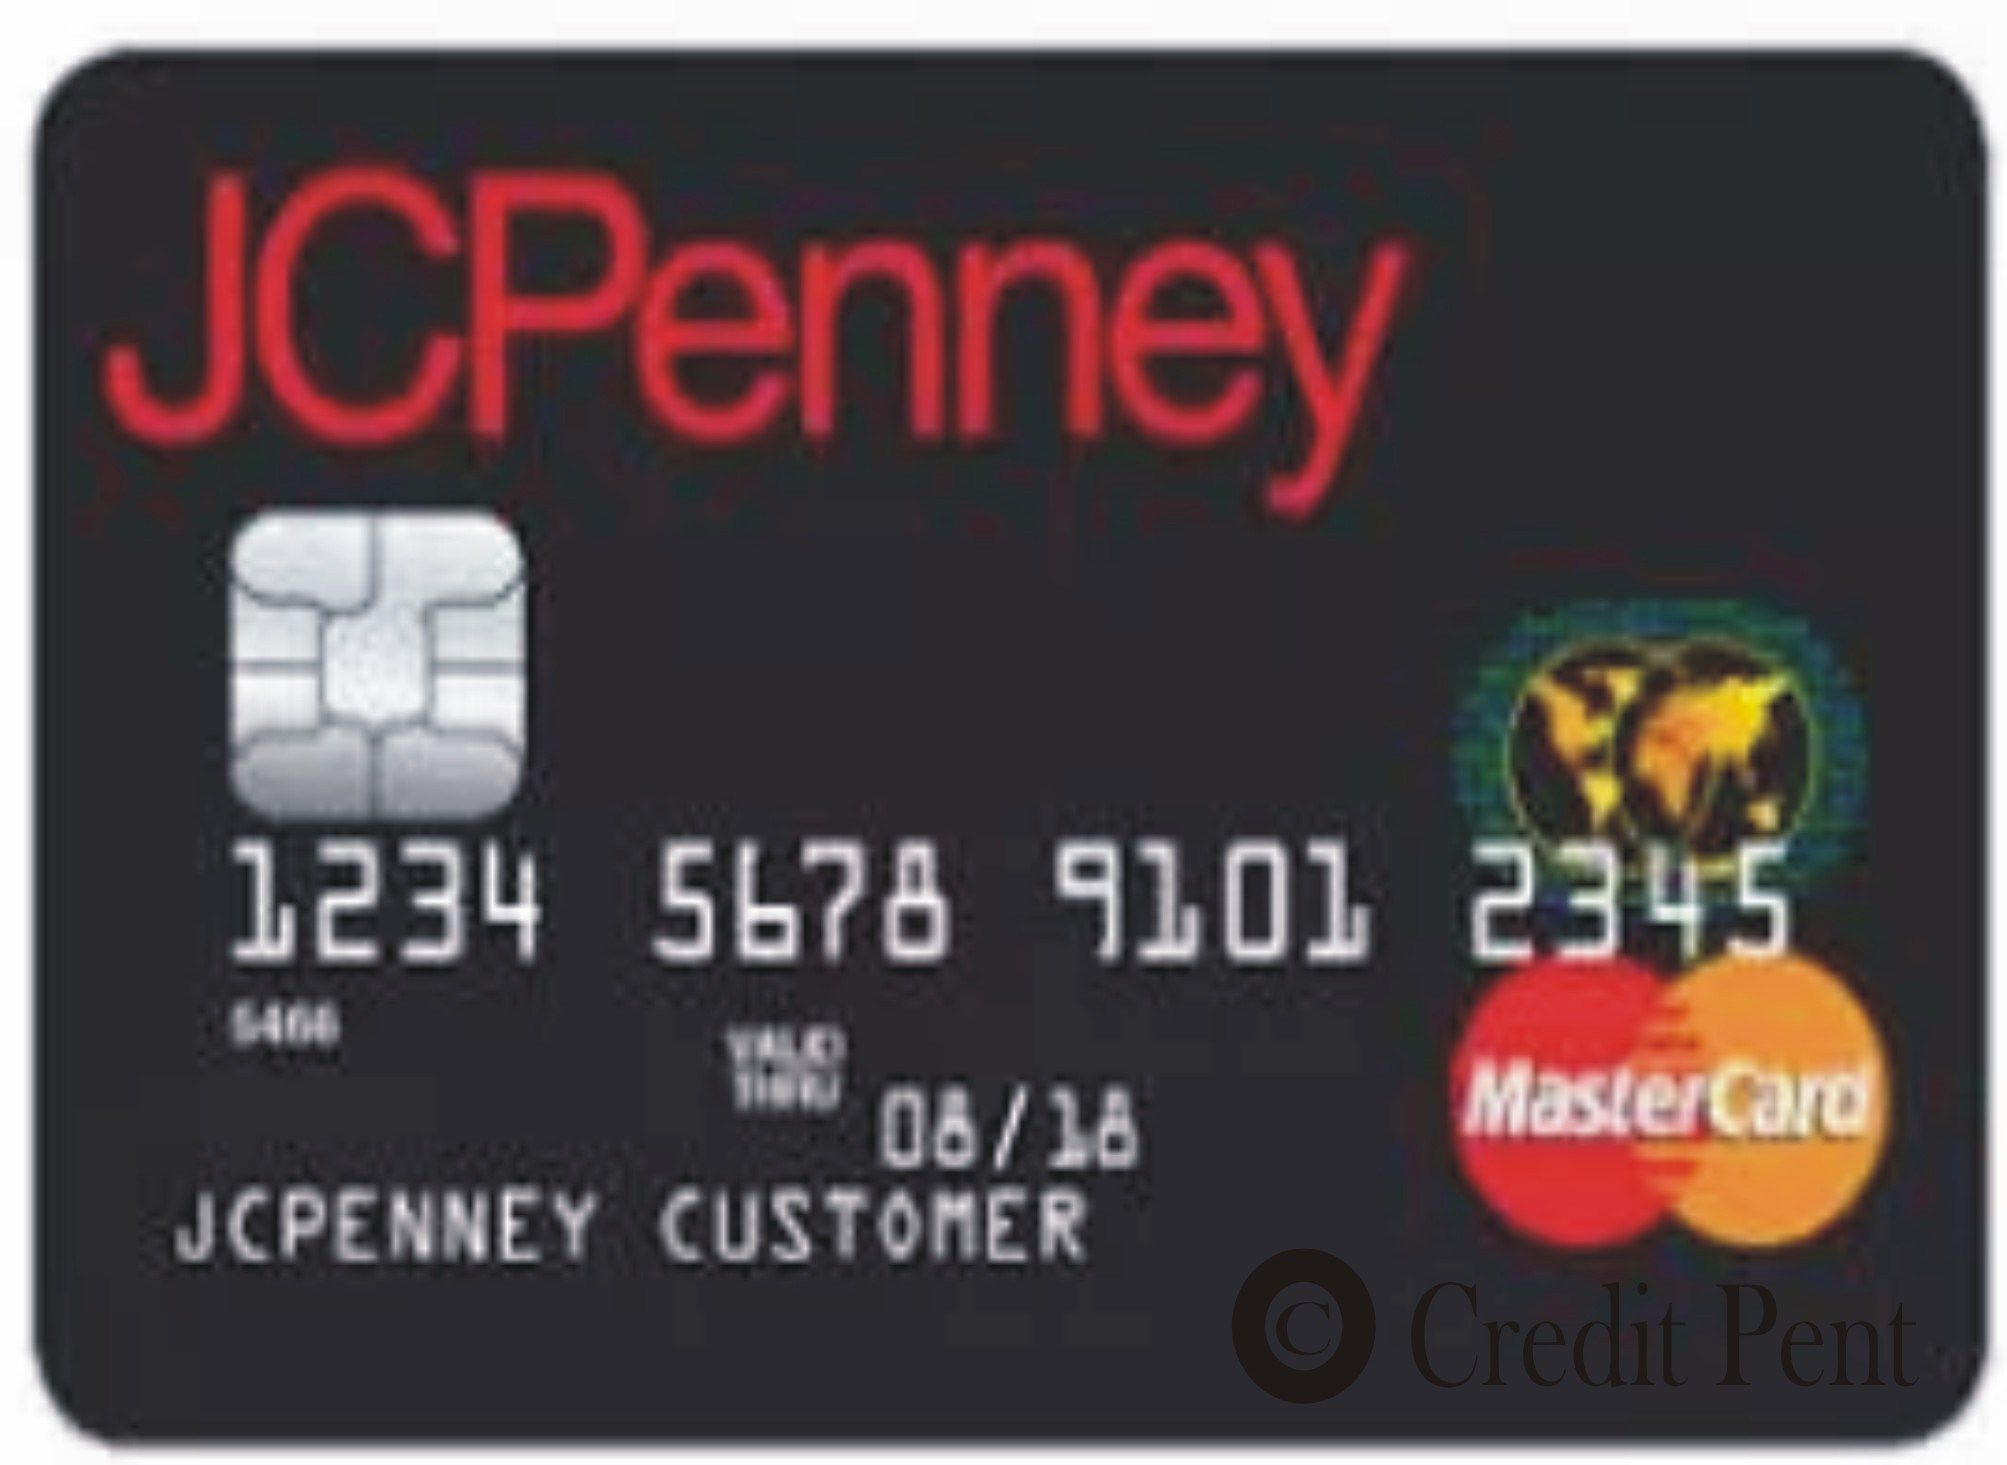 Jcpenney Rewards Credit Card Login Account Rewards Credit Cards